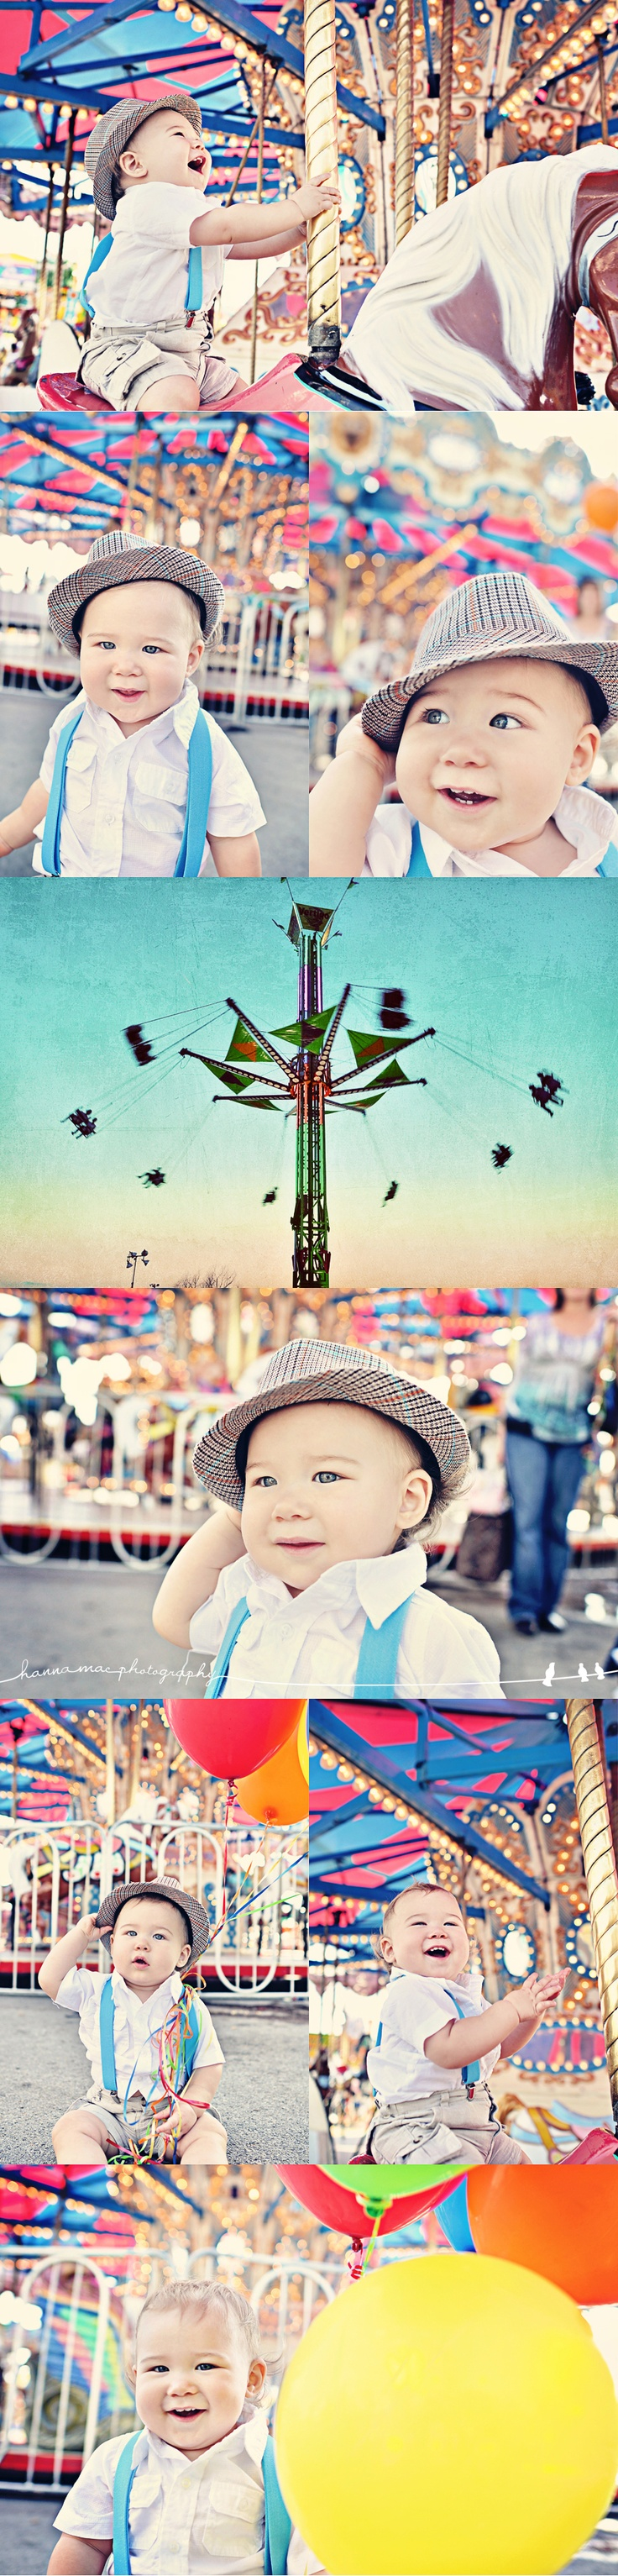 Oh MY Goodness!  I've shot Seniors and a 4 year old at the Carnival but never a little one.